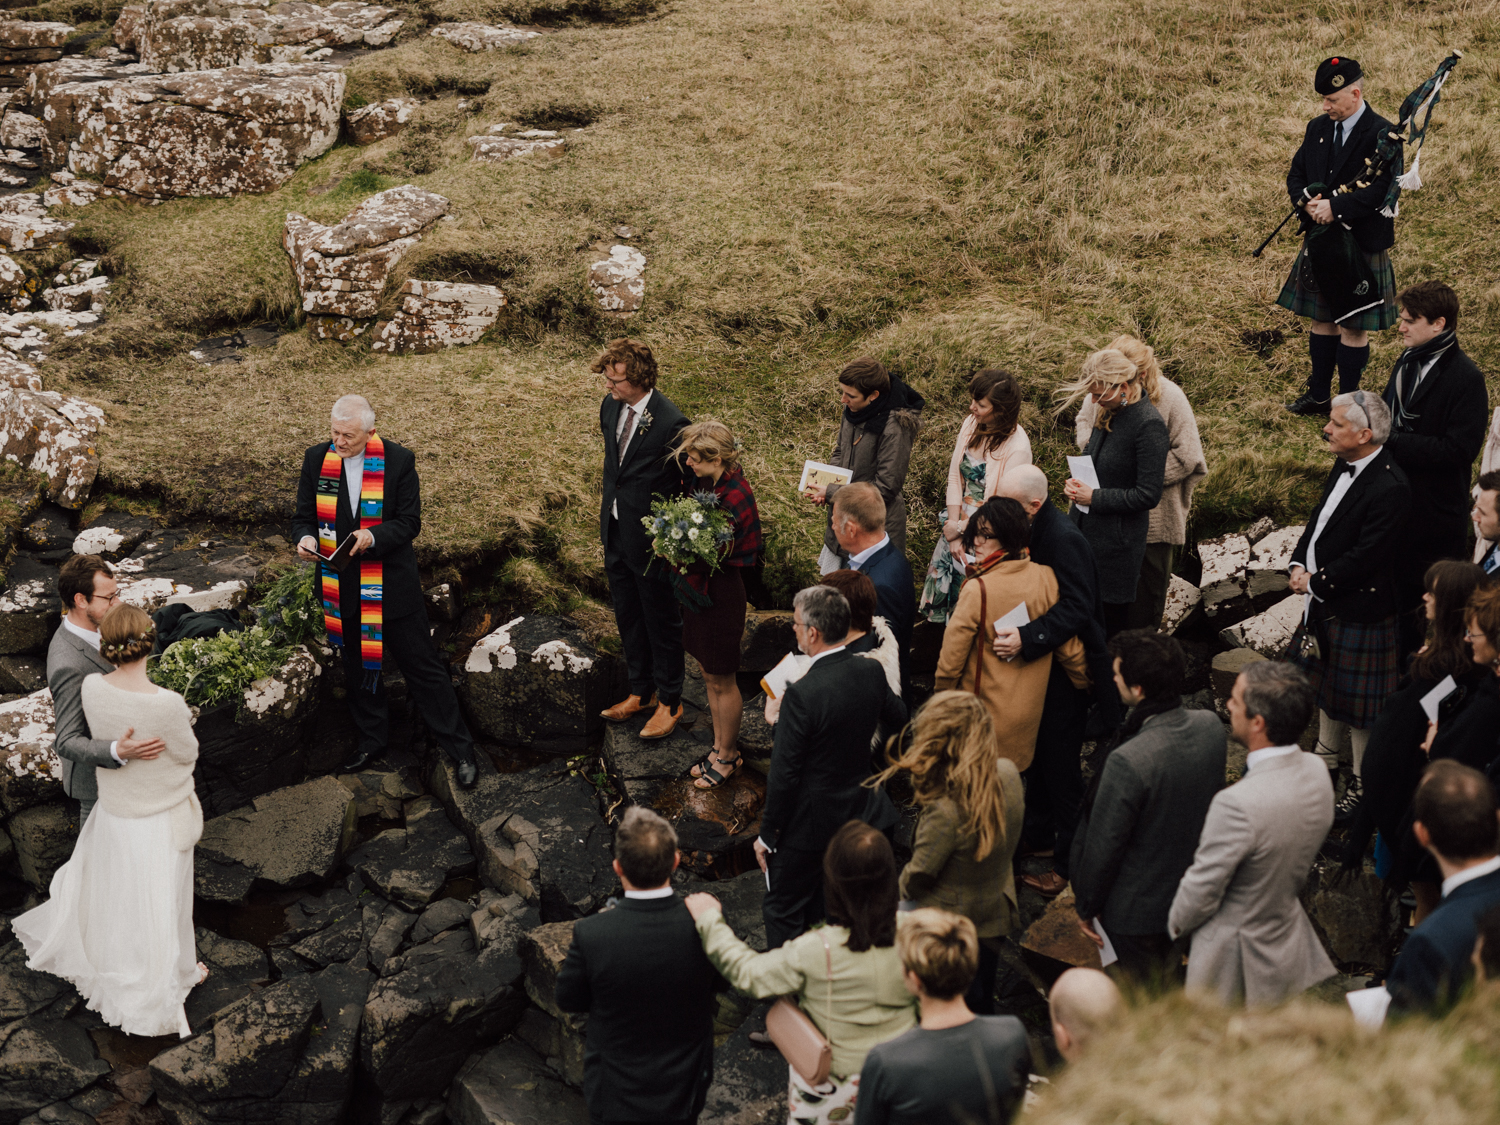 capyture-wedding-photographer-destination-nature-intimate-wedding-isle-of-skye-scotland-256